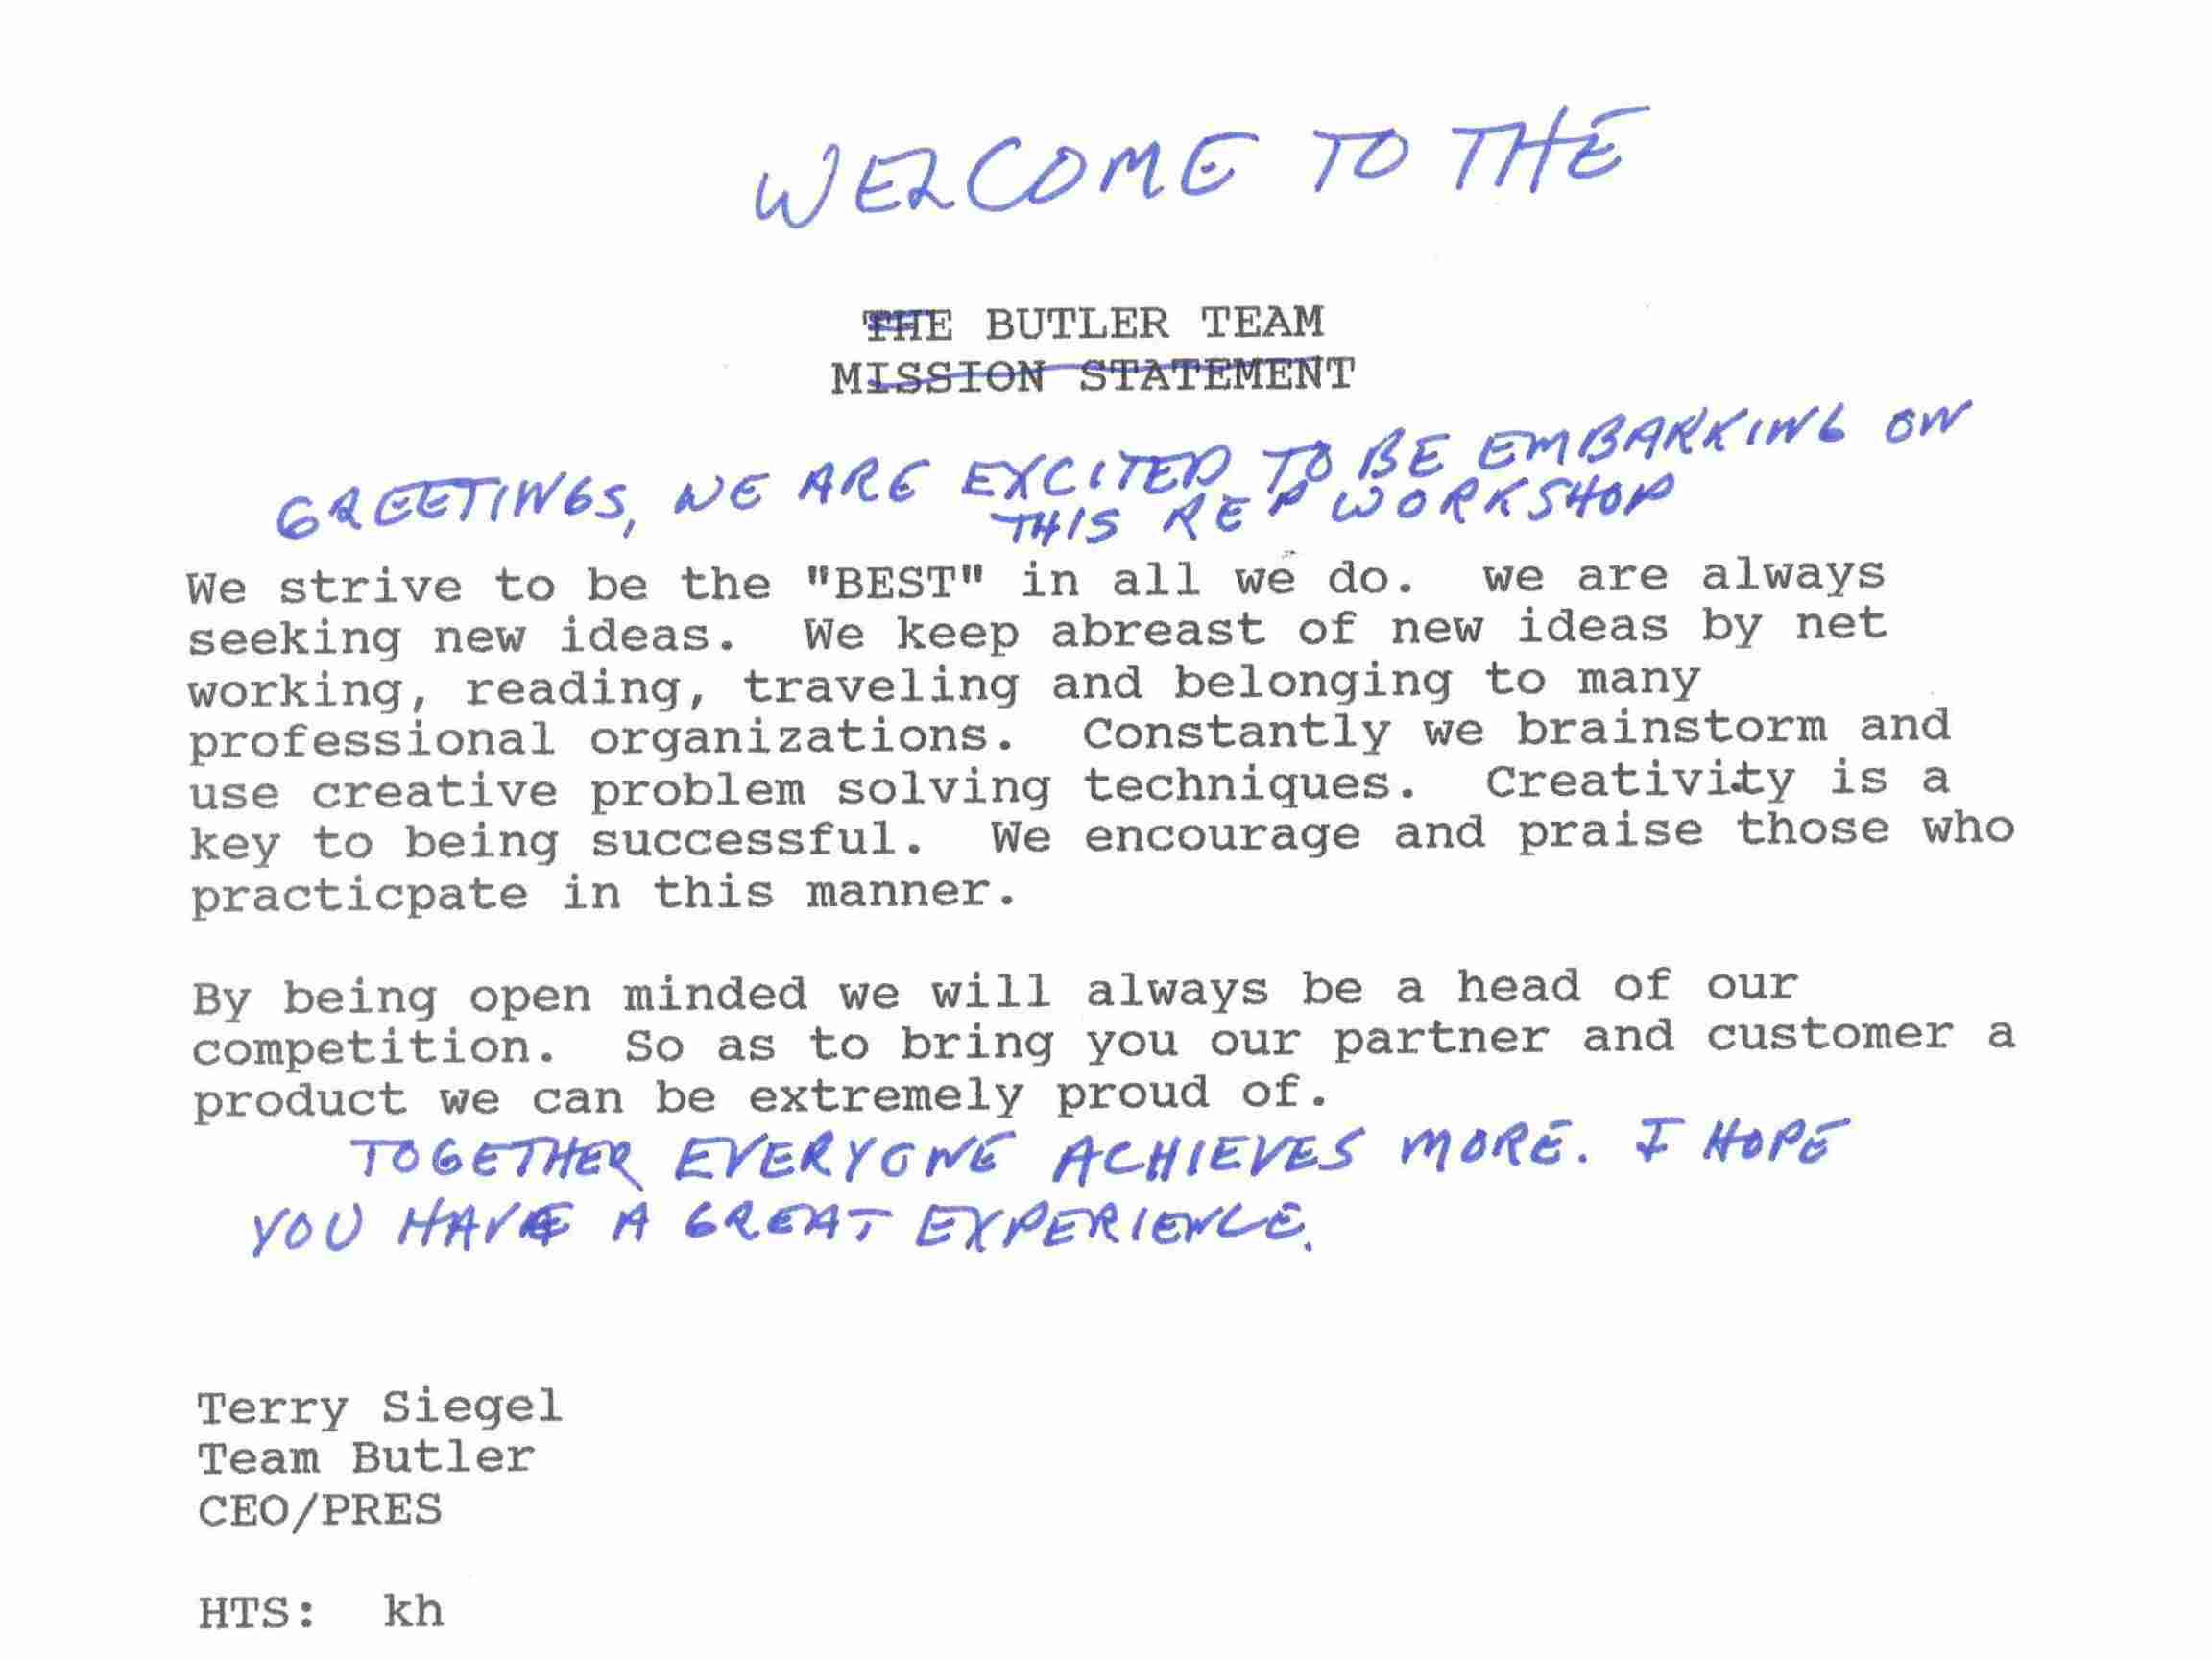 Notes handwritten by CEO Terry Siegel on a typed memo welcoming new hires to the organization.